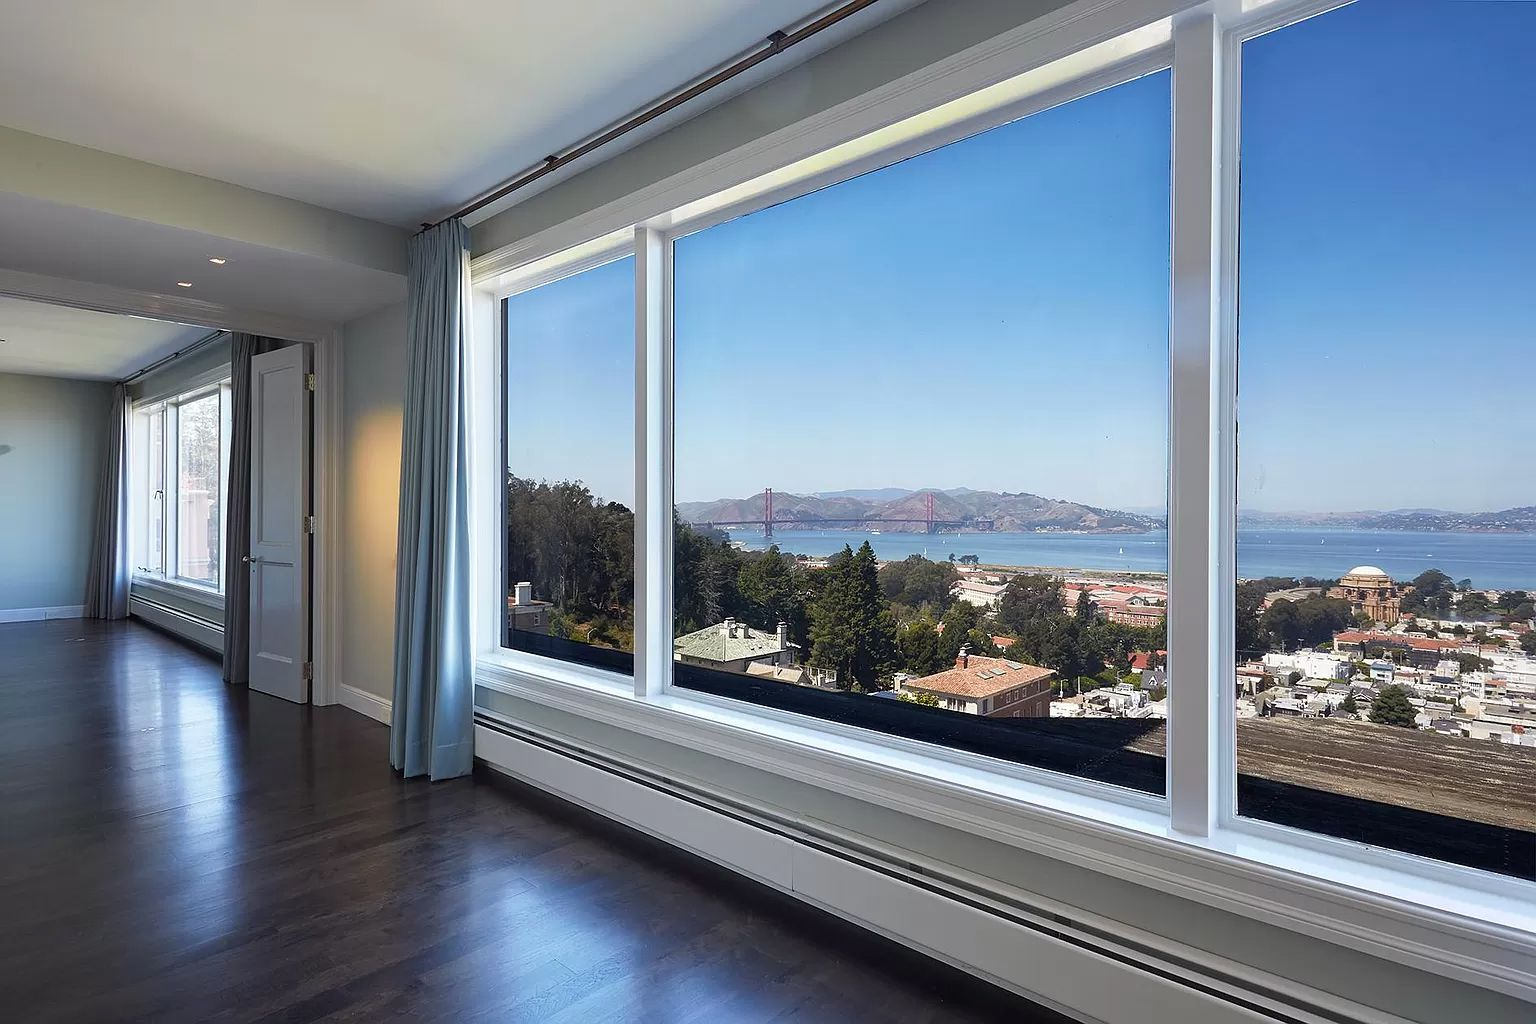 61d8f 2920 broadway living view Seven Bedroom Pac Heights Mansion Sets New Record for Most Expensive Home Sold In SF at $43.5M